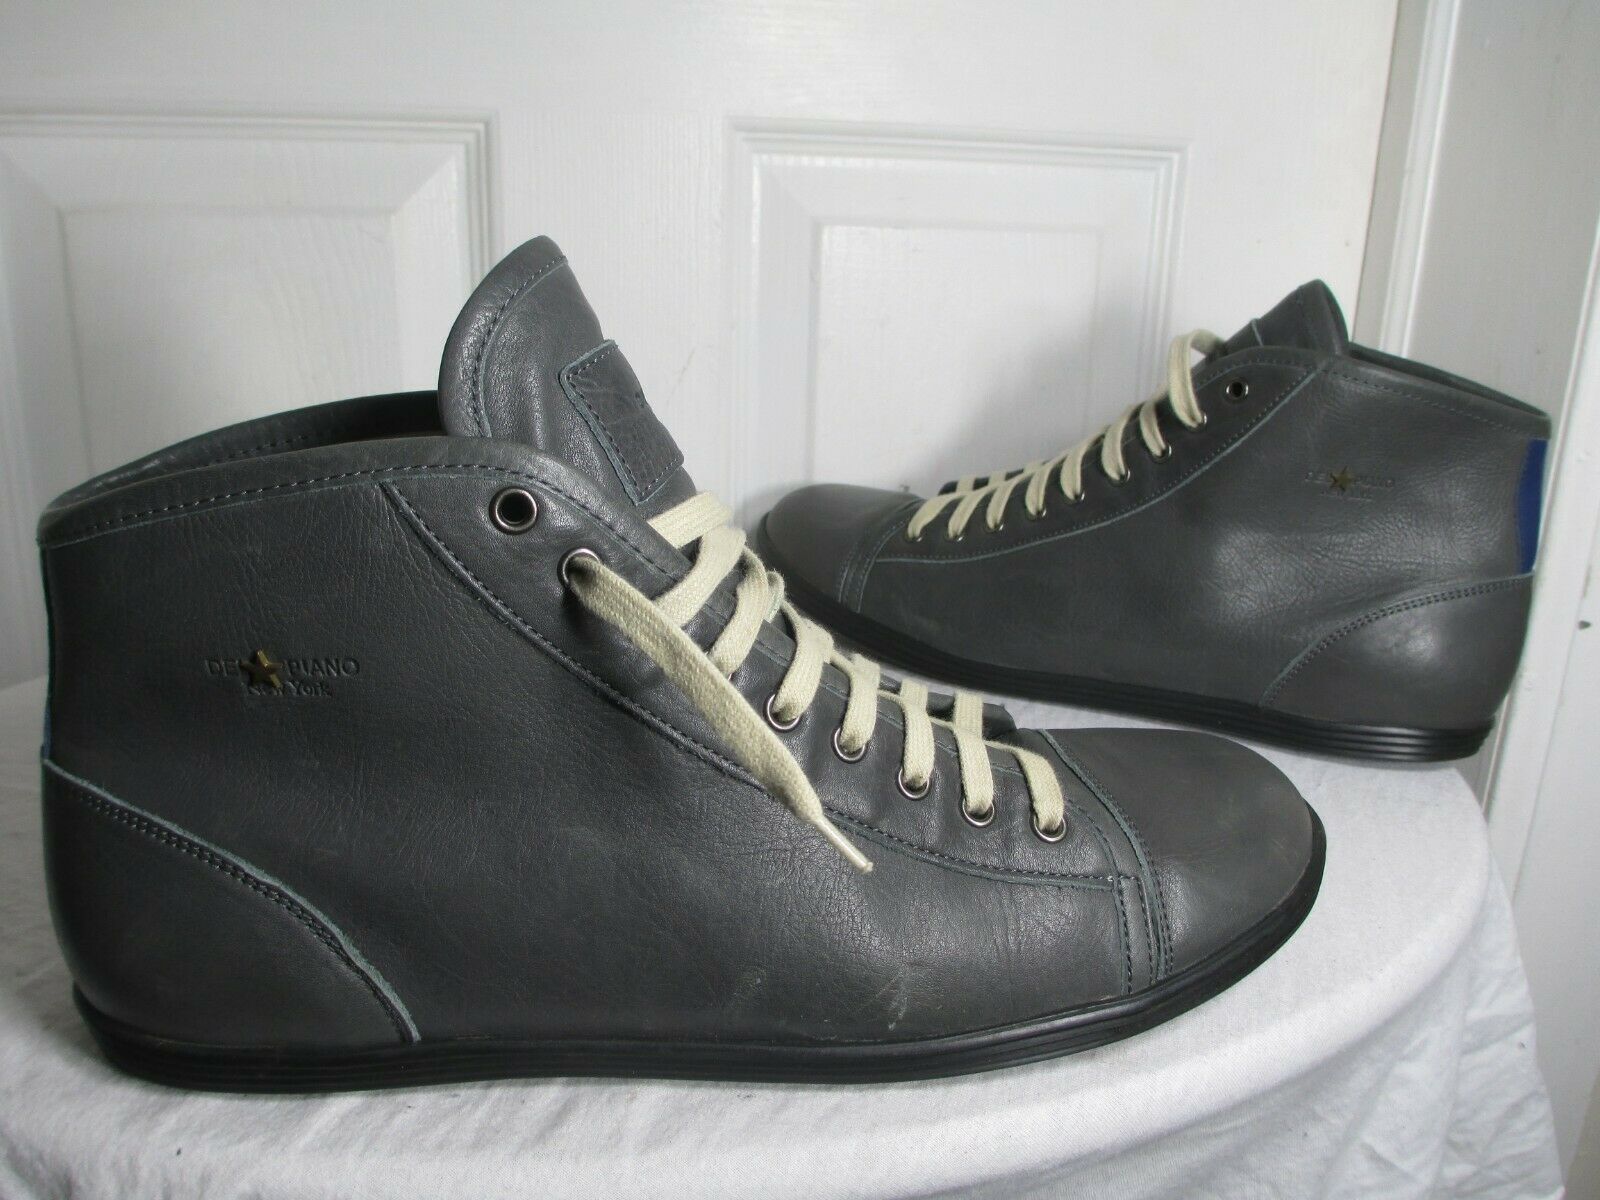 DEL⭐PIANO NEW YORK MEN'S GREY LEATHER HIGH TOP SNEAKERS 46 US 13 MADE IN ITALY